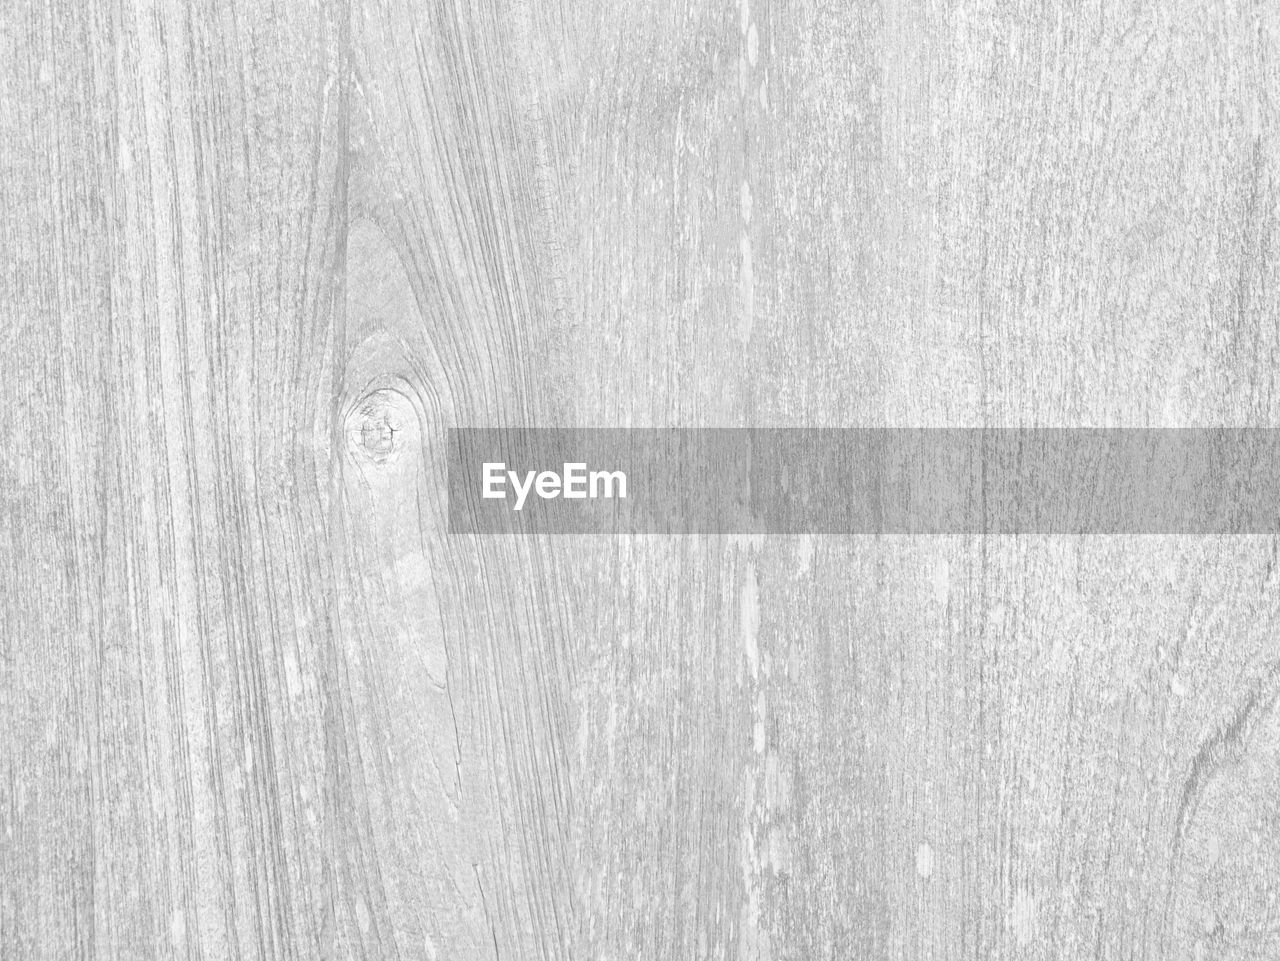 backgrounds, textured, wood - material, full frame, pattern, no people, close-up, abstract, plank, wood, wood grain, nature, tree, outdoors, plant, abstract backgrounds, wrinkled, day, copy space, gray, textured effect